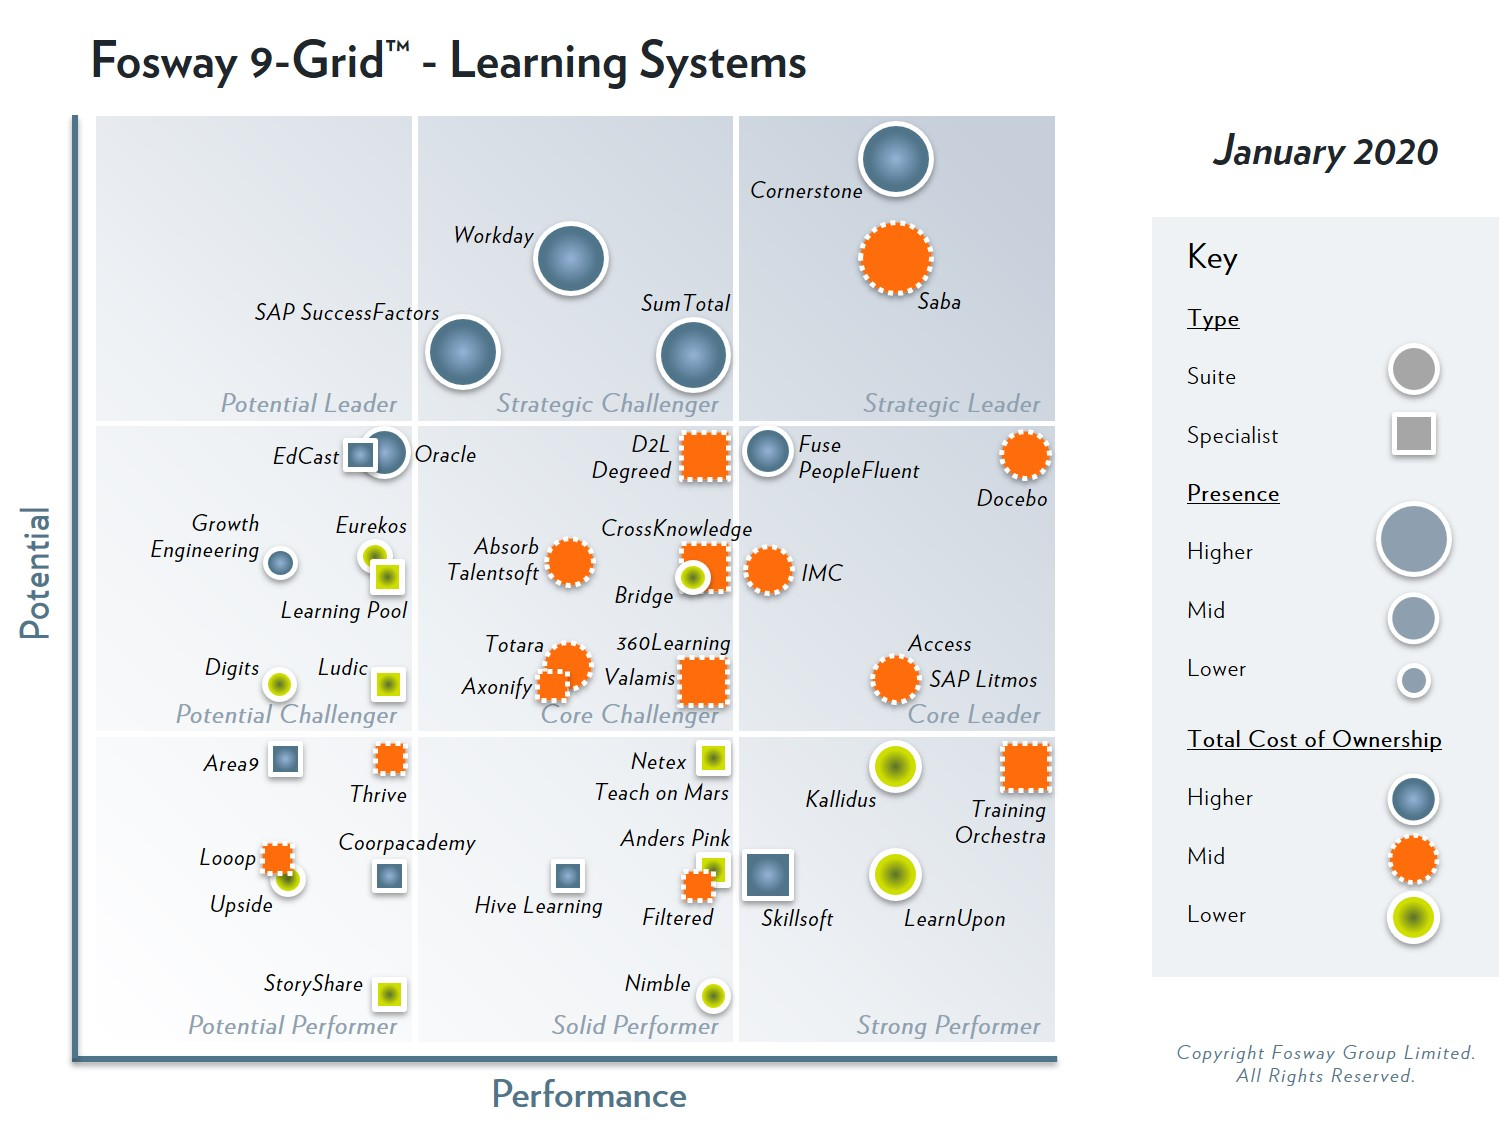 PeopleFluent's learning system capabilities has earn the company Core Leader status on 2020 Fosway 9-Grid™ for Learning Systems